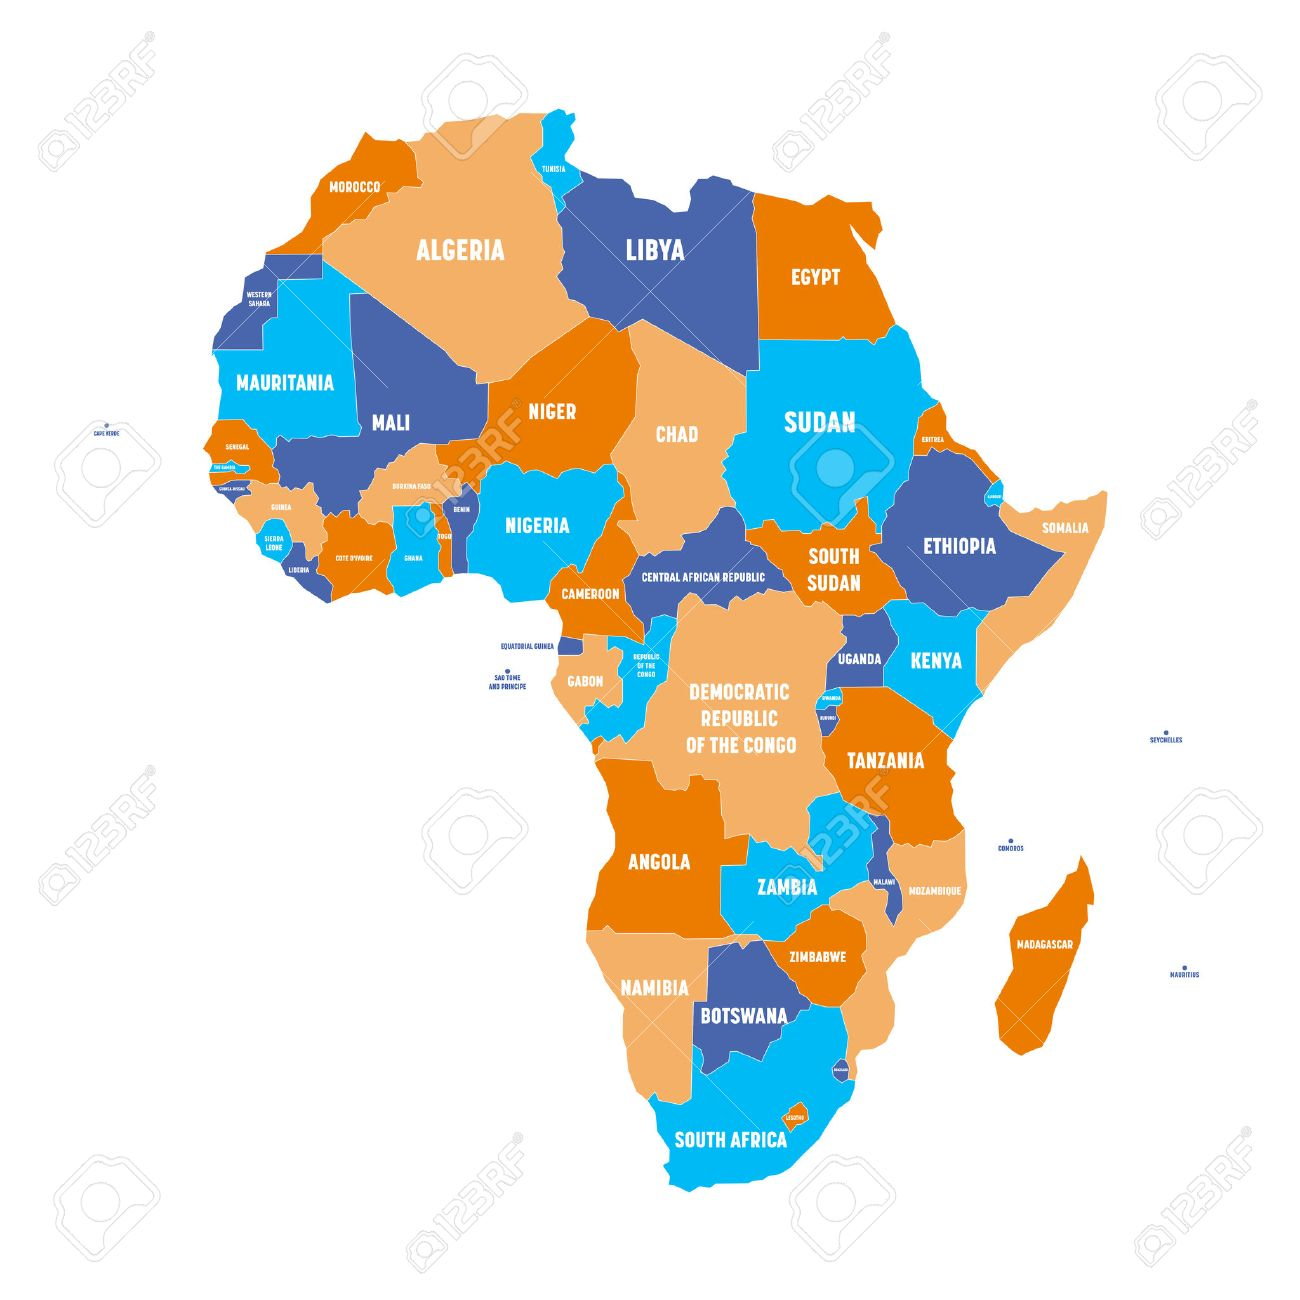 Multicolored Political Map Of Africa Continent With National - World political map with country names